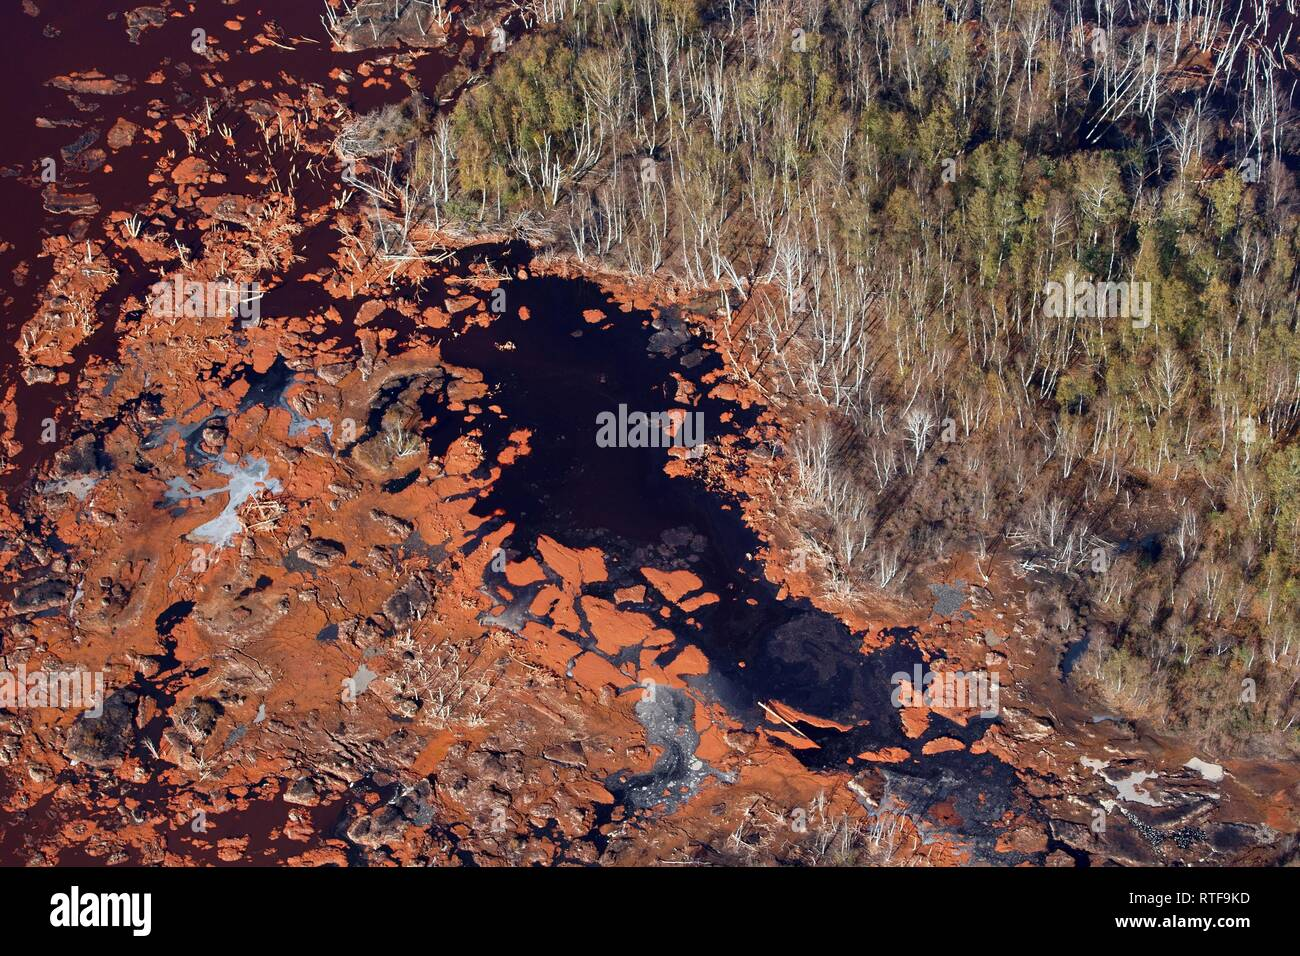 Aerial view, red sludge landfill, Stade, Lower Saxony, Germany - Stock Image